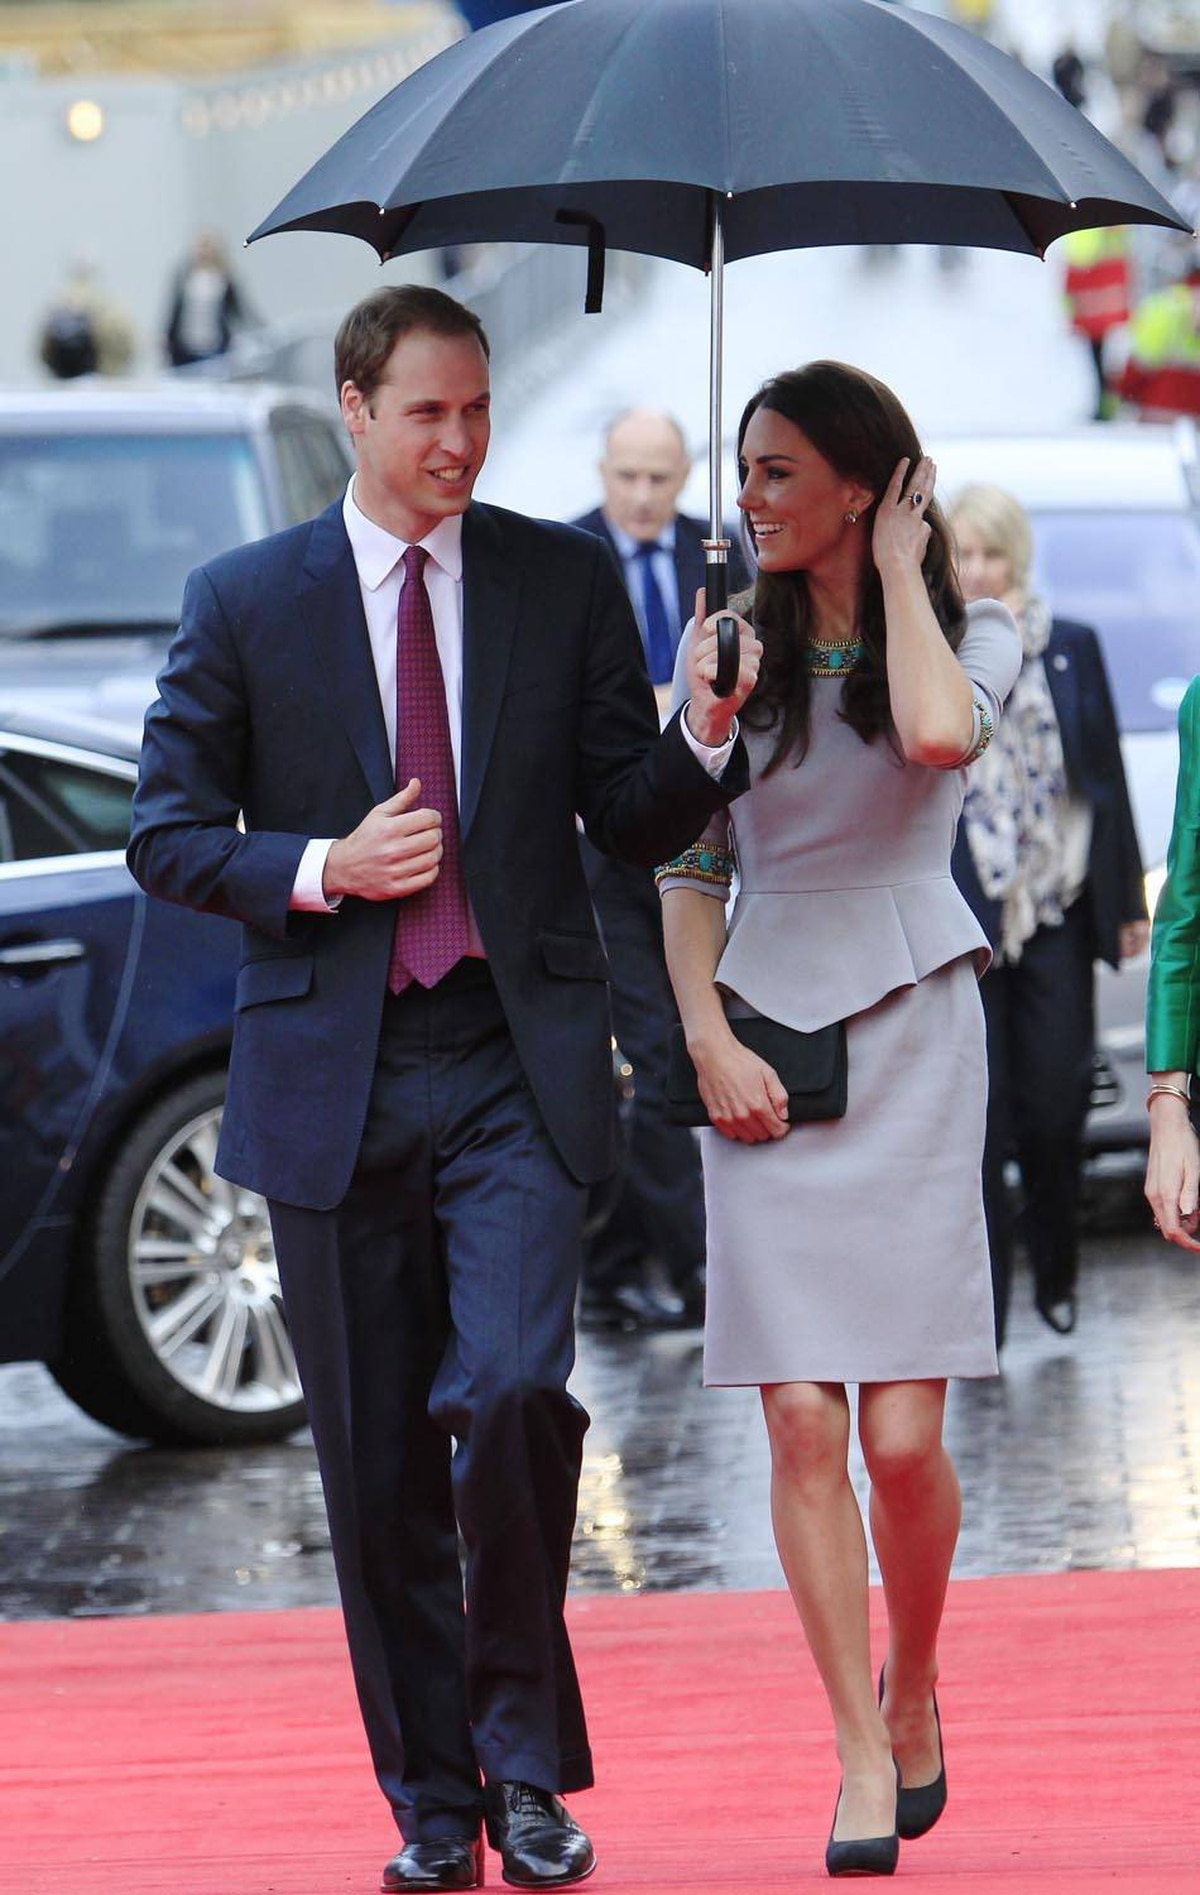 Prince William keeps her Matthew Williamson dress - complete with on-trend peplum - protected from the rain at the premiere of African Cats in London on April 25, her first public appearance in weeks.